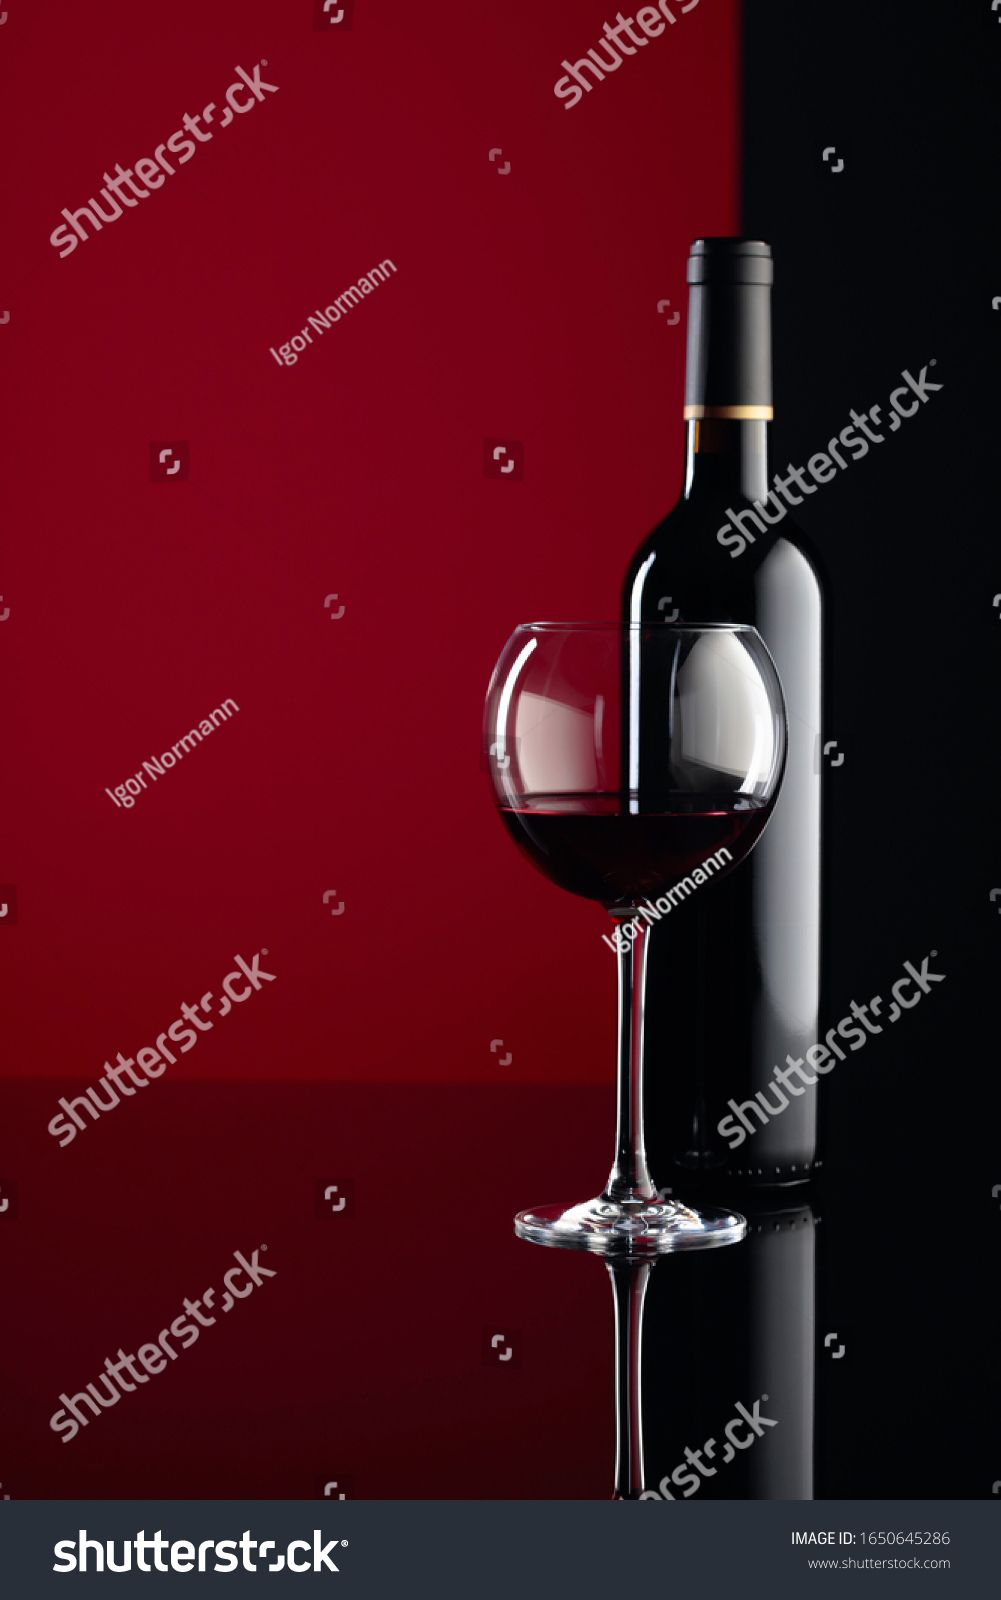 Glass And Bottle Of Red Wine On A Black Reflective Background Free Space For Your Content Ad Paid Wine Black Red Glass In 2020 Red Wine Glass Glass Bottles